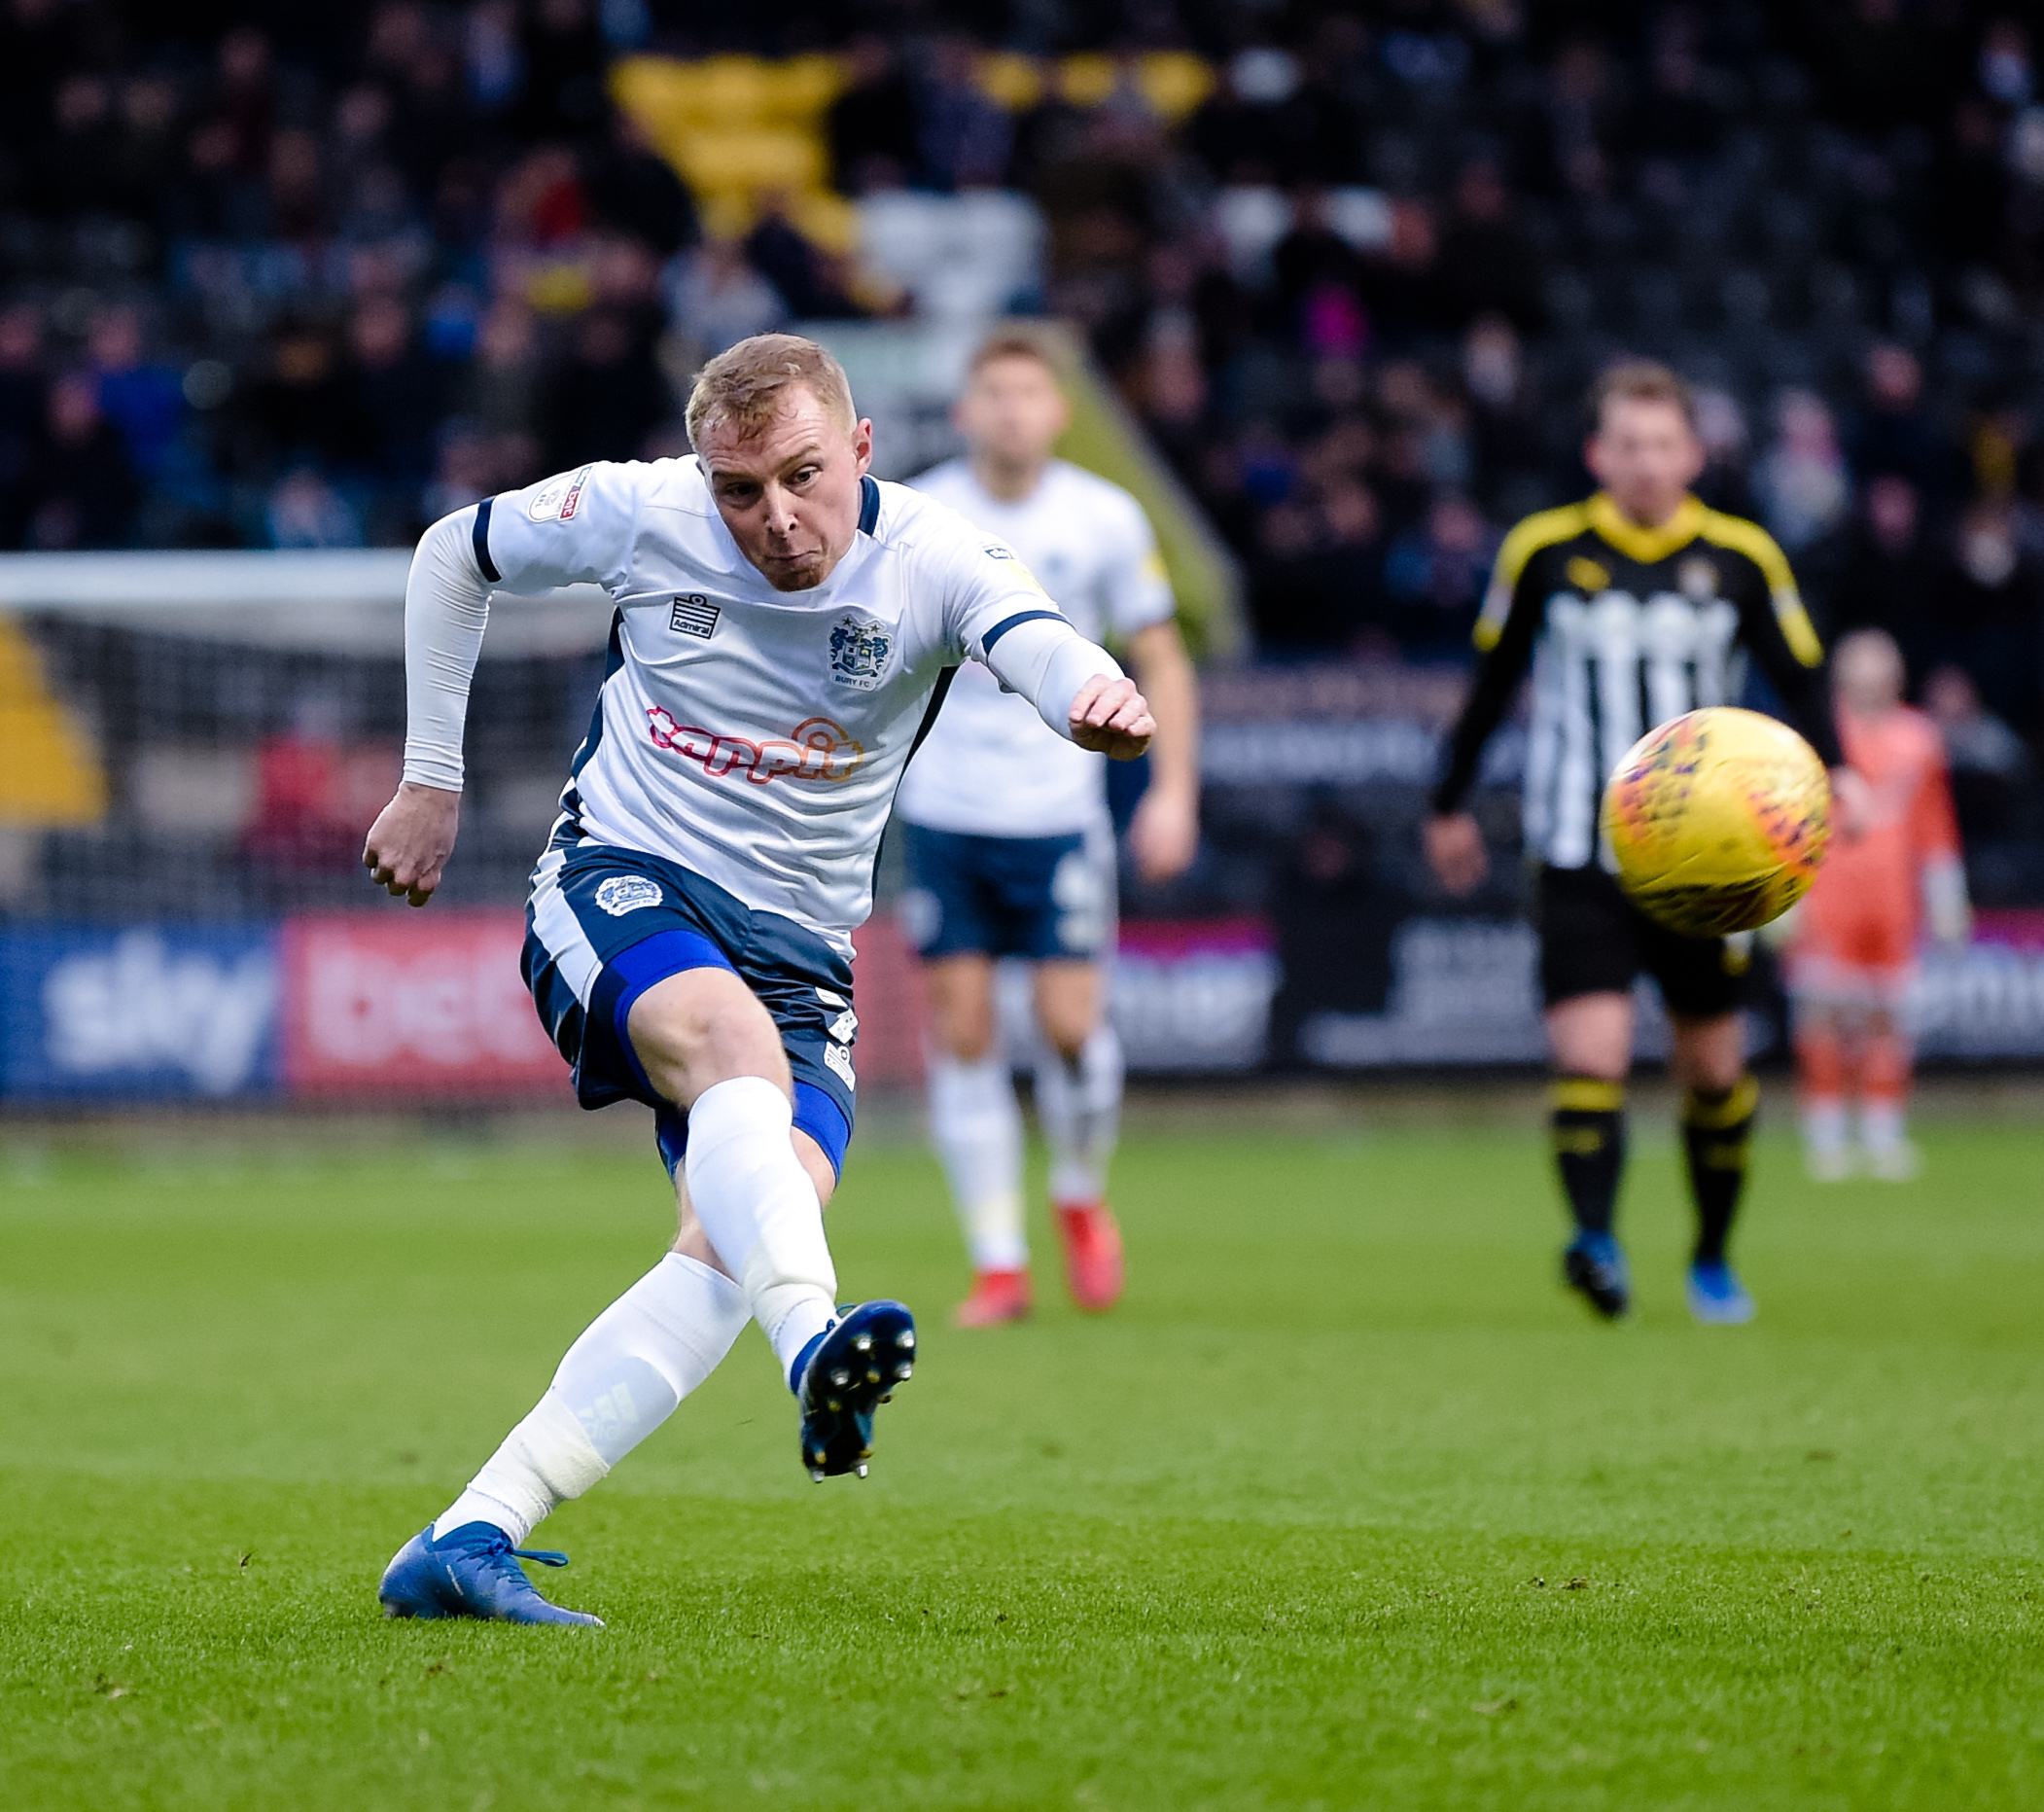 Bury midfielder Nicky Adams during the Sky Bet League 2 match between Notts County and Bury FC at Meadow Lane, Nottingham on Saturday 29th December 2018. Credit: Andy Whitehead...Tel: +44 7746 877546.e-mail: info@andywhiteheadphotography.com.Address: Clif